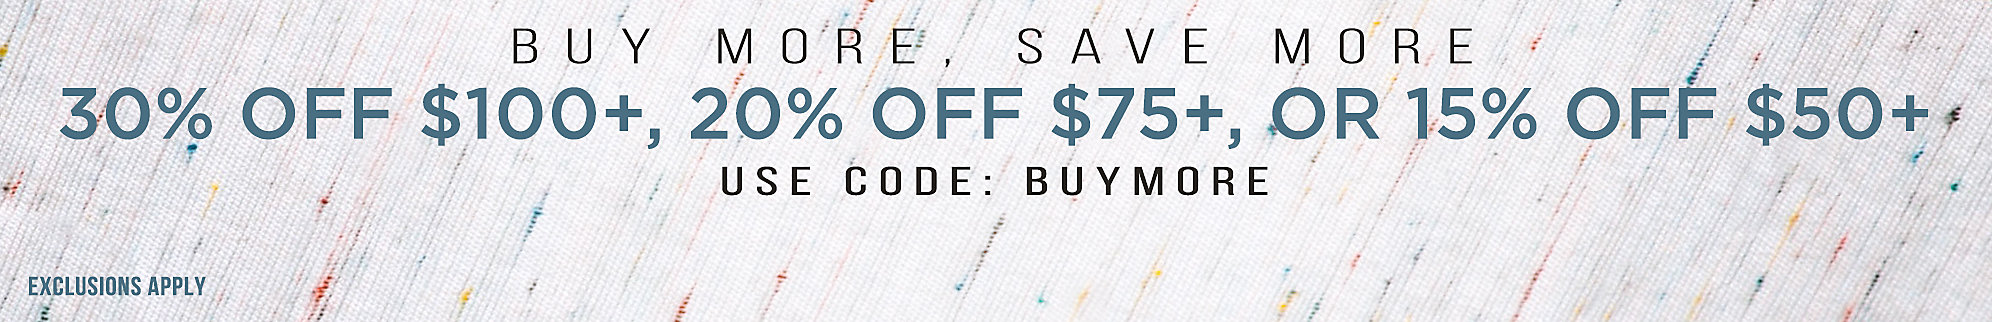 30% OFF $100+, 20% OFF $75+, OR 15% OFF $50+ with code: BUYMORE